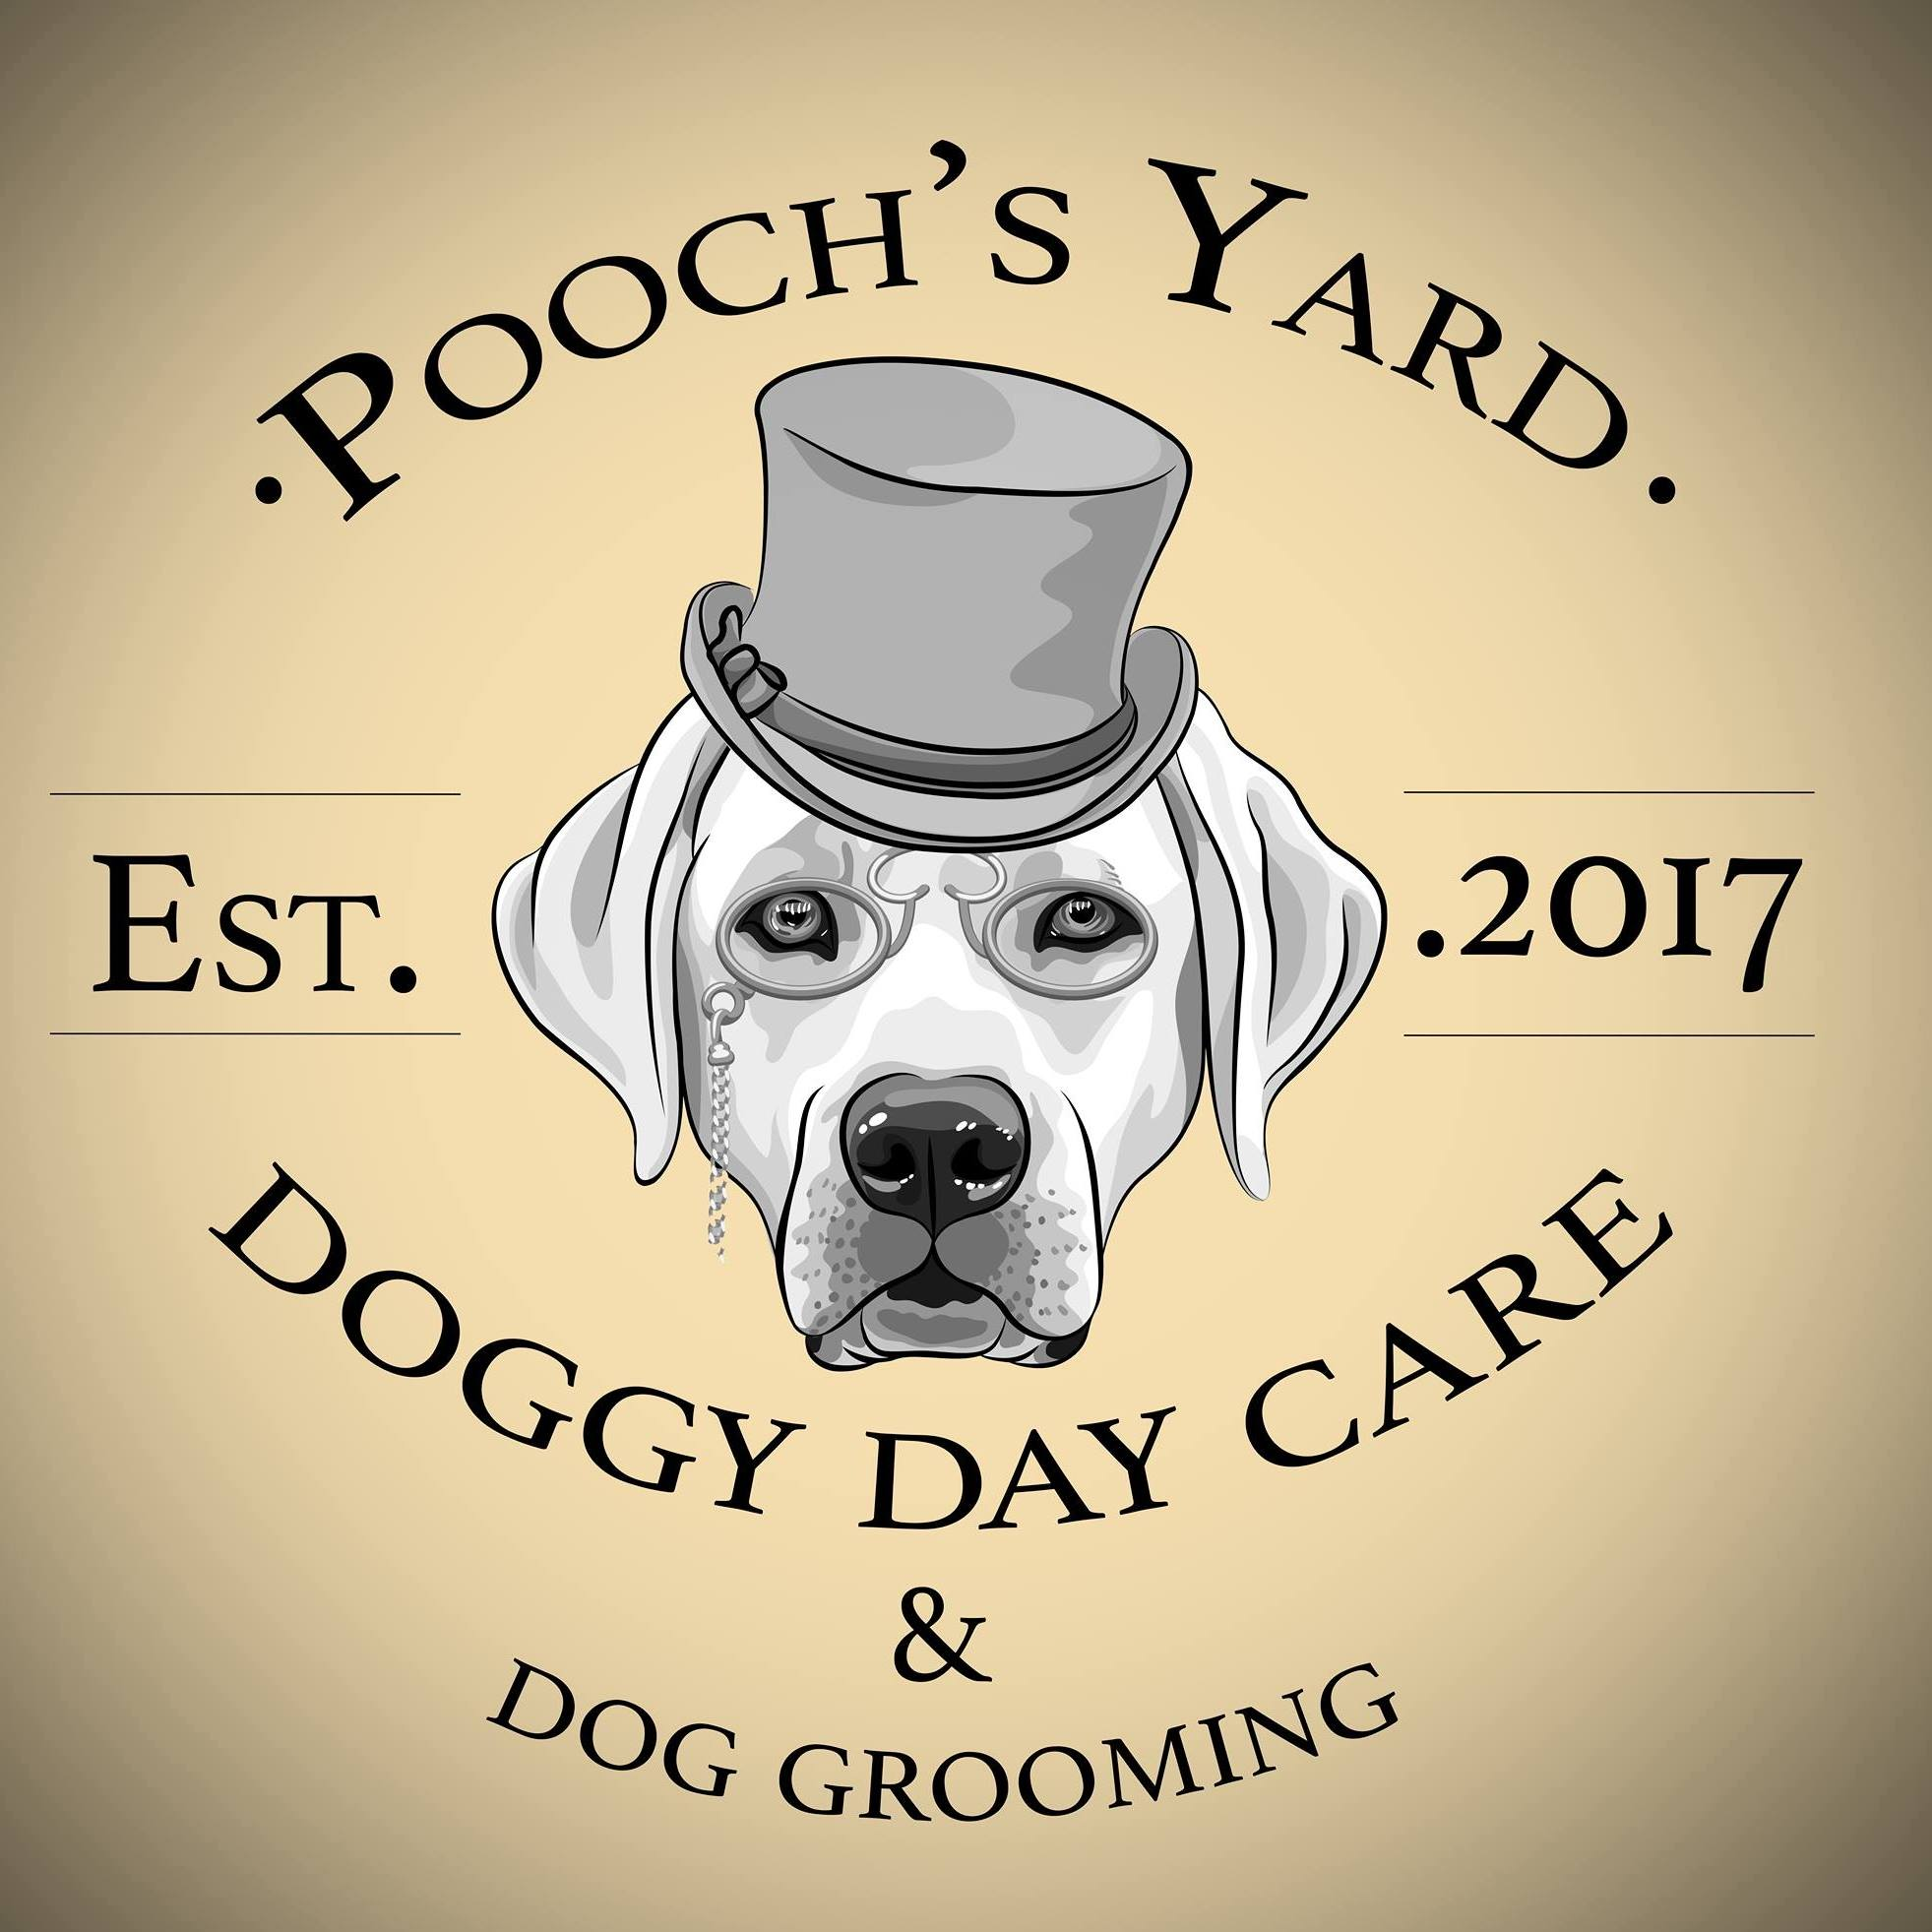 Pooch's Yard - Doggy Day Care